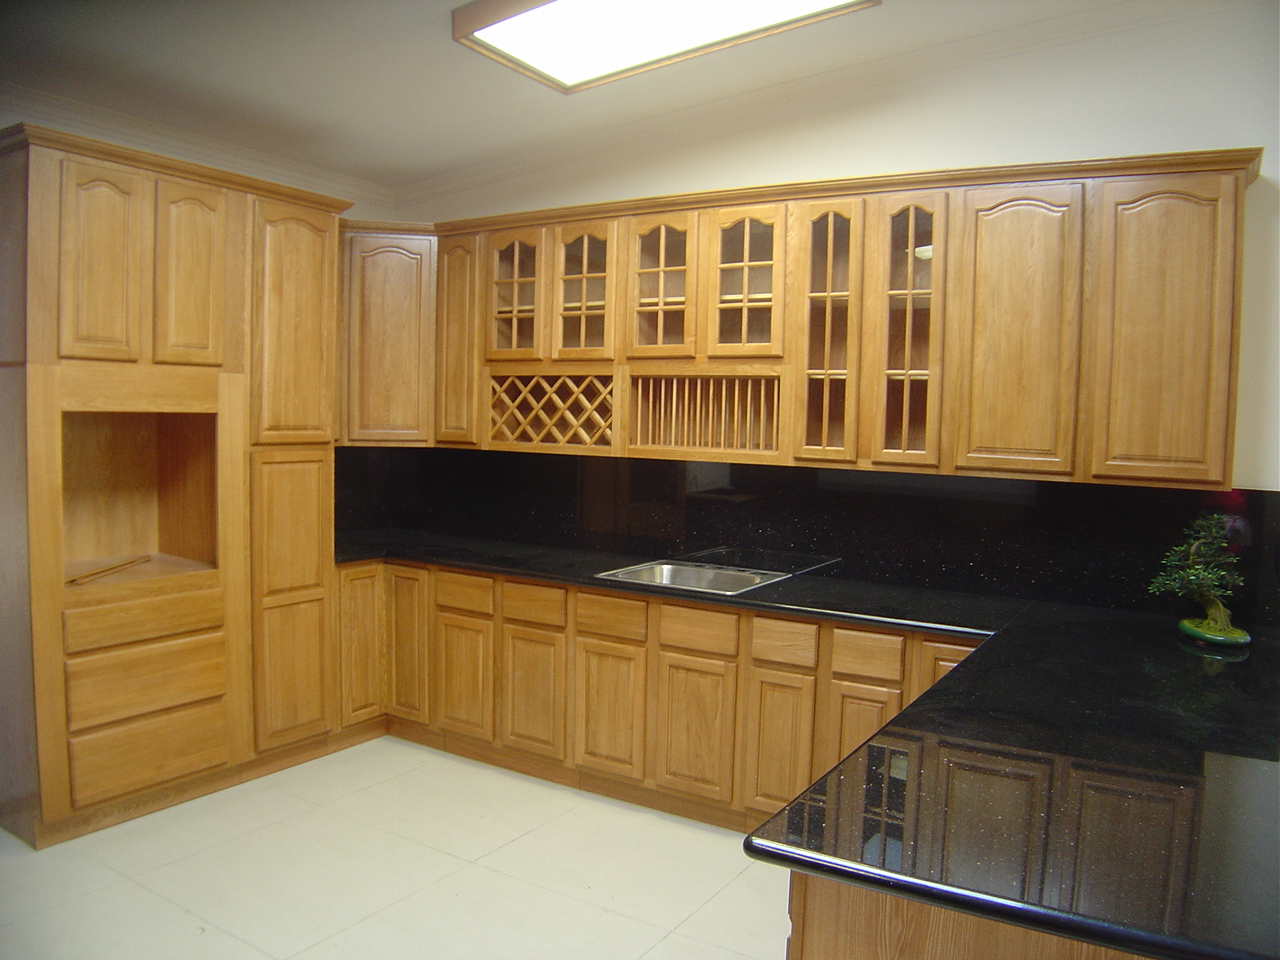 Oak kitchen cabinets for your interior kitchen minimalist - Kitchen interior desing ...